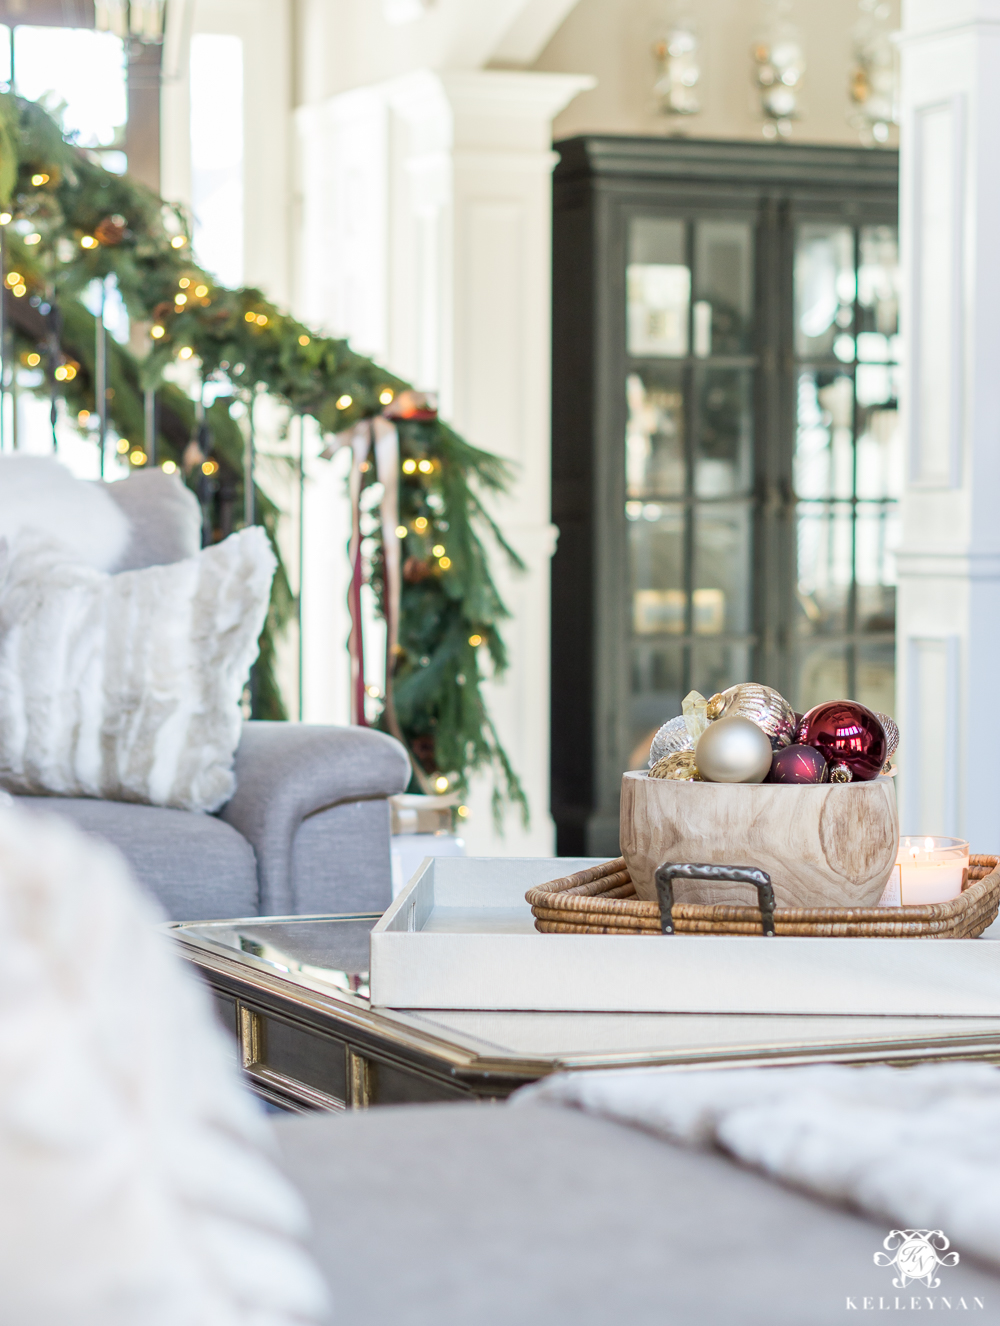 Christmas living room with wooden bowl of ornaments